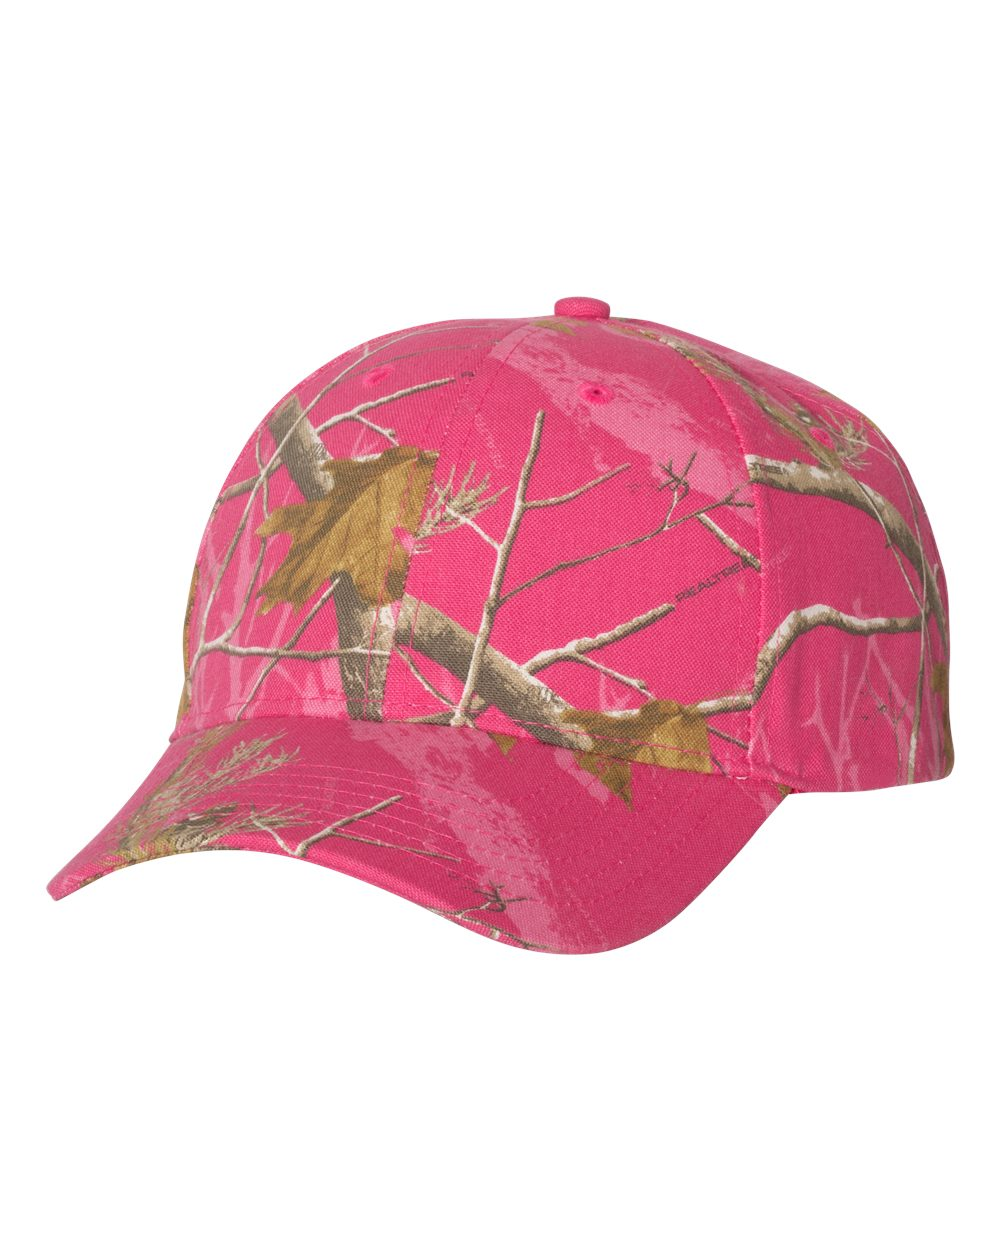 click to view Hot Pink Realtree AP